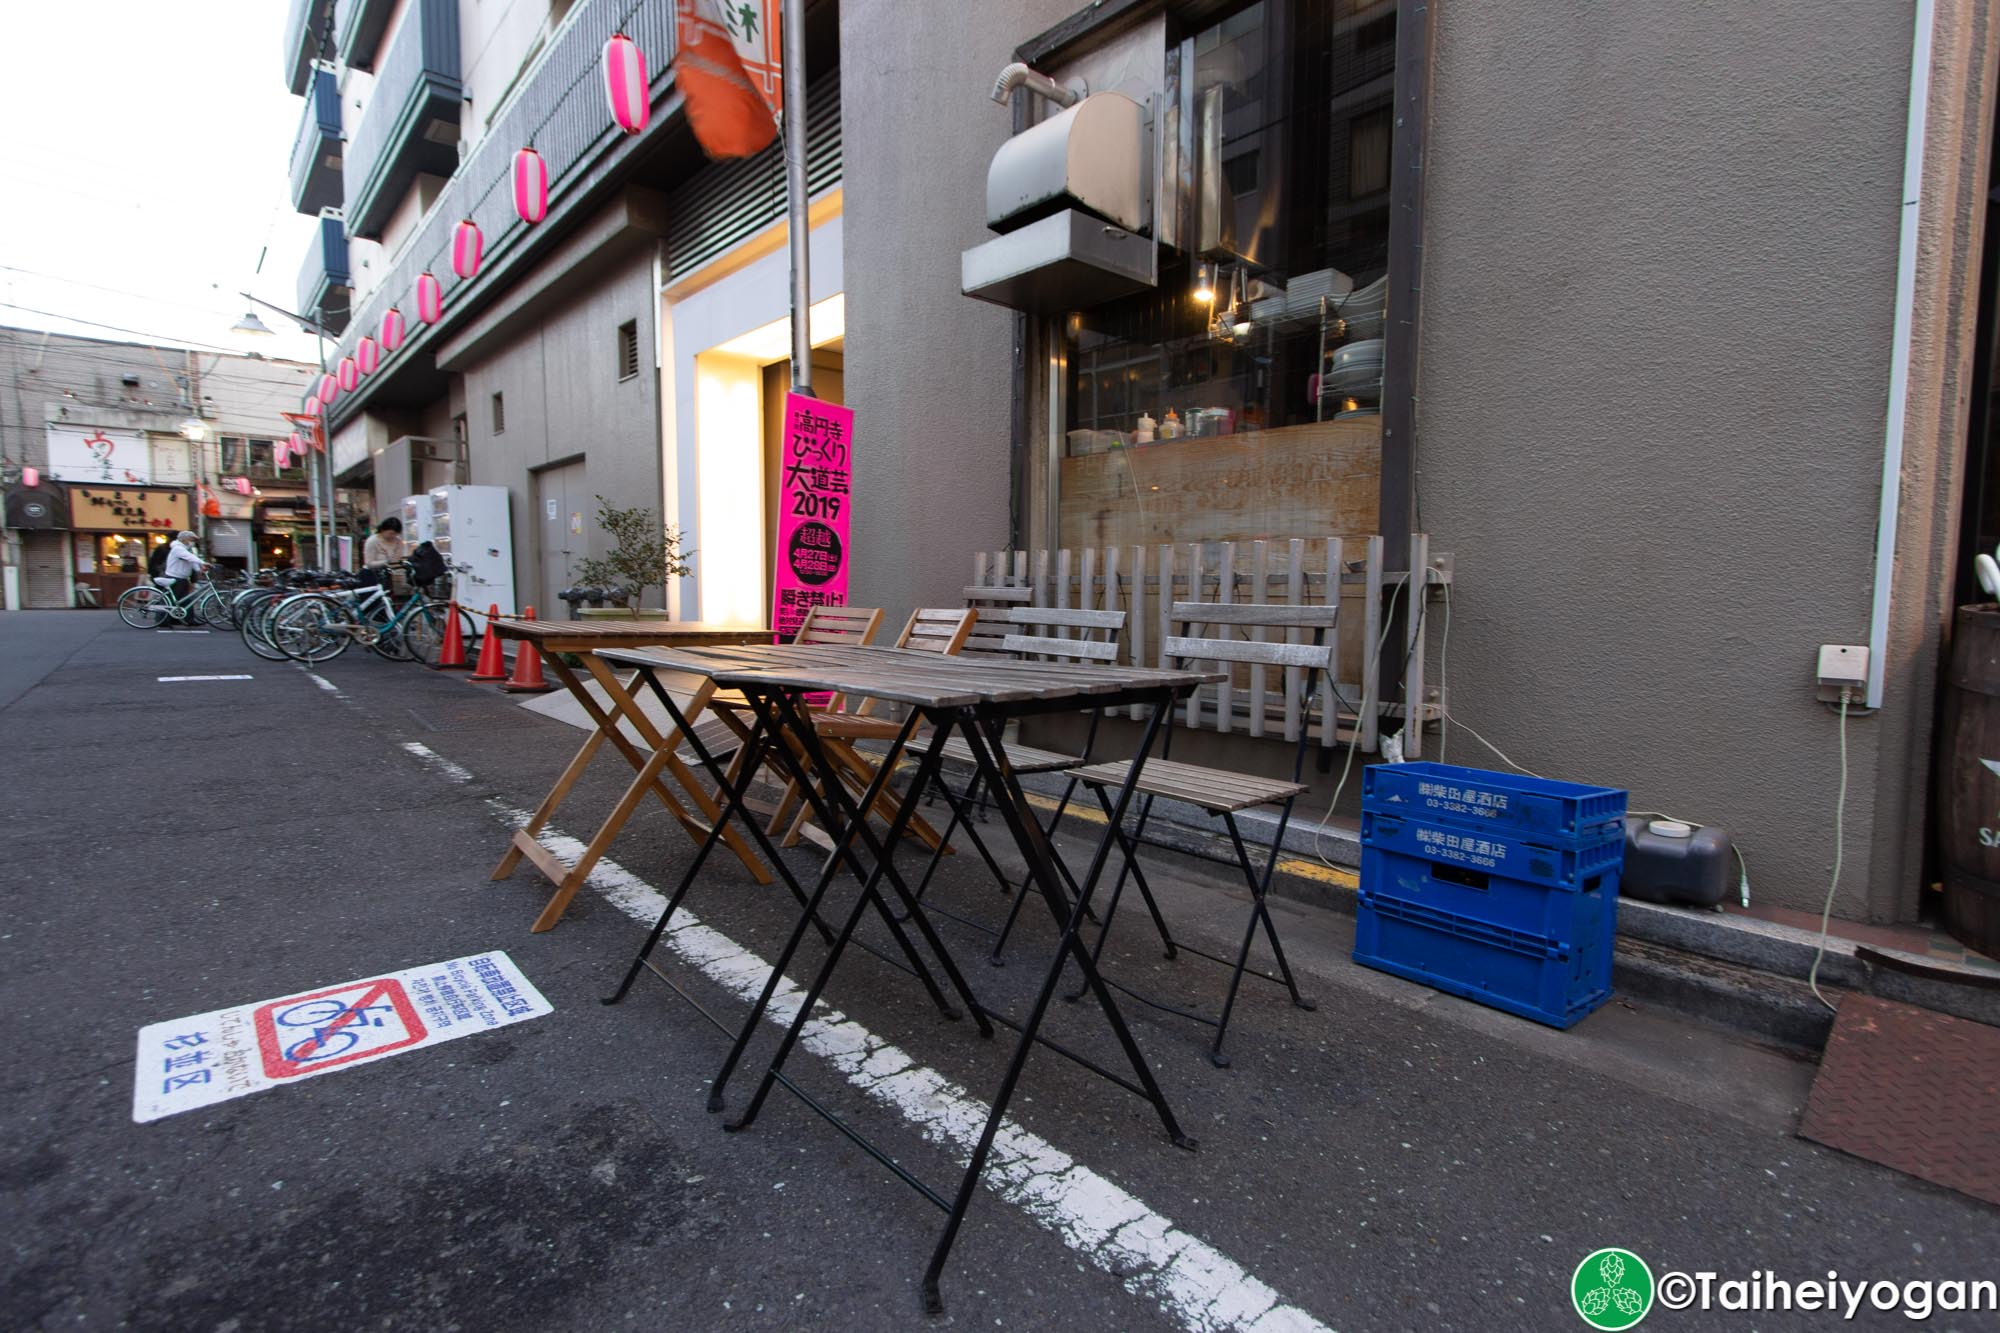 Beer Cafe Ban Kan (ビアカフェ 萬感) - Outdoor Seating